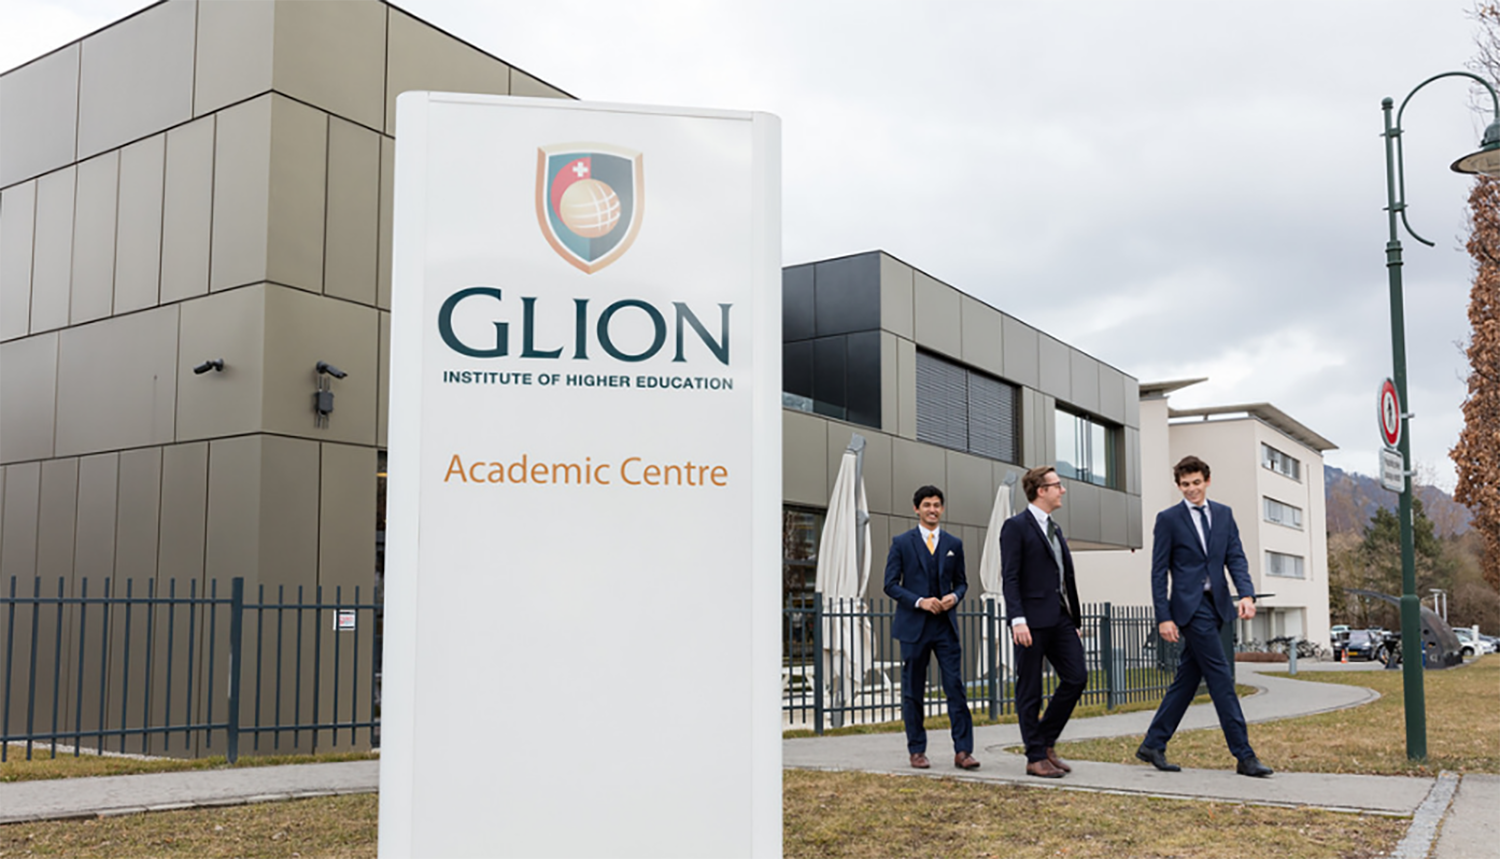 glion-institute-of-higher-education-bulle-campus-11-resized